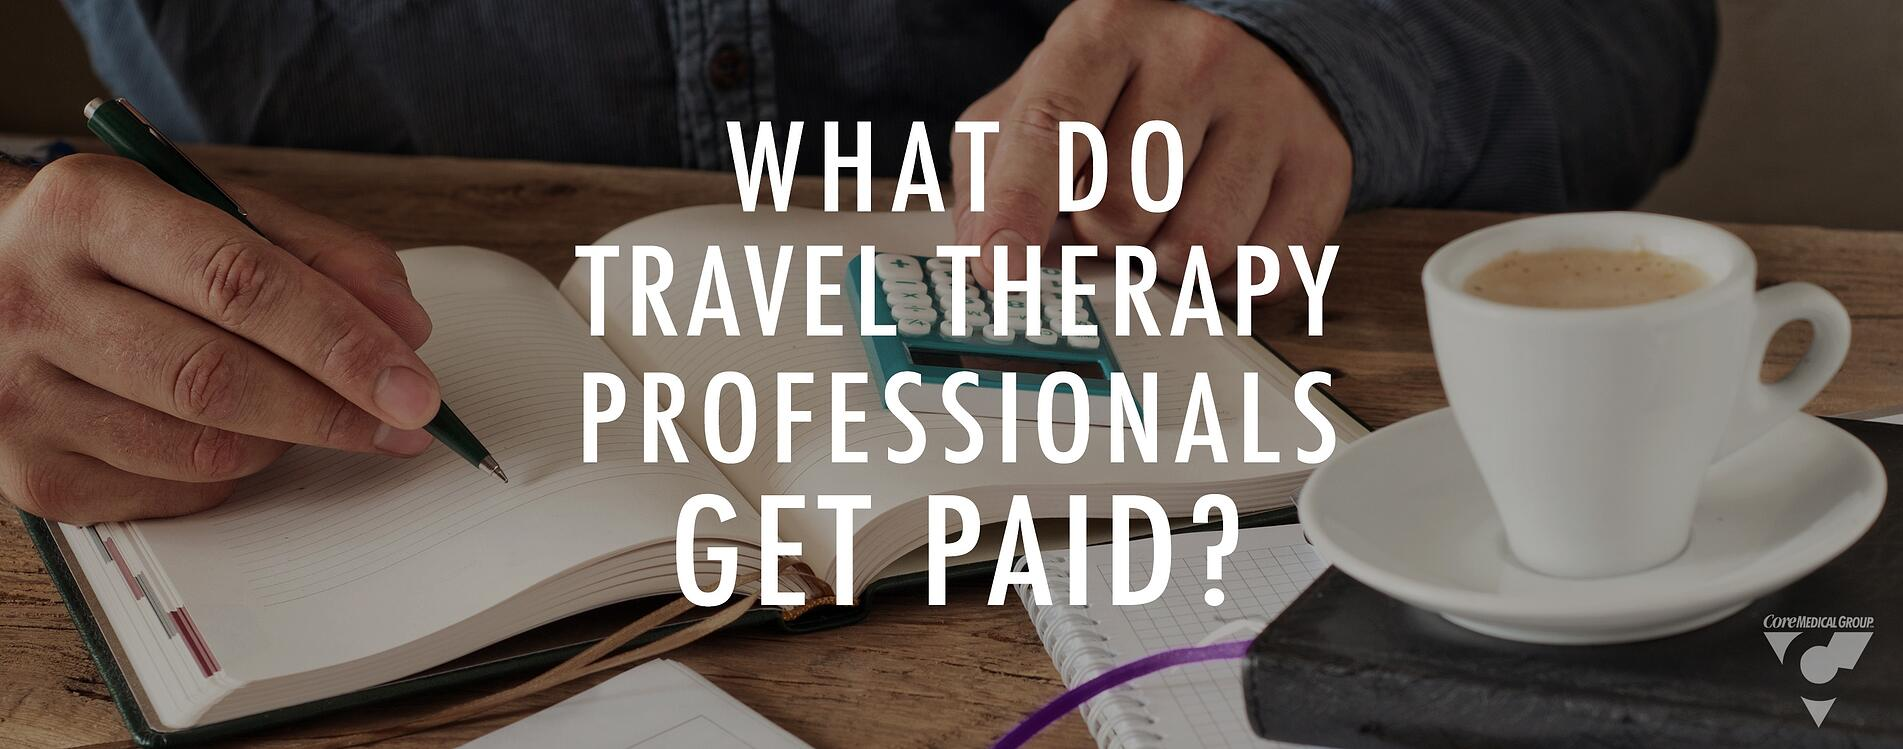 CMG Blog - What Do Travel Therapy Professionals Get Paid